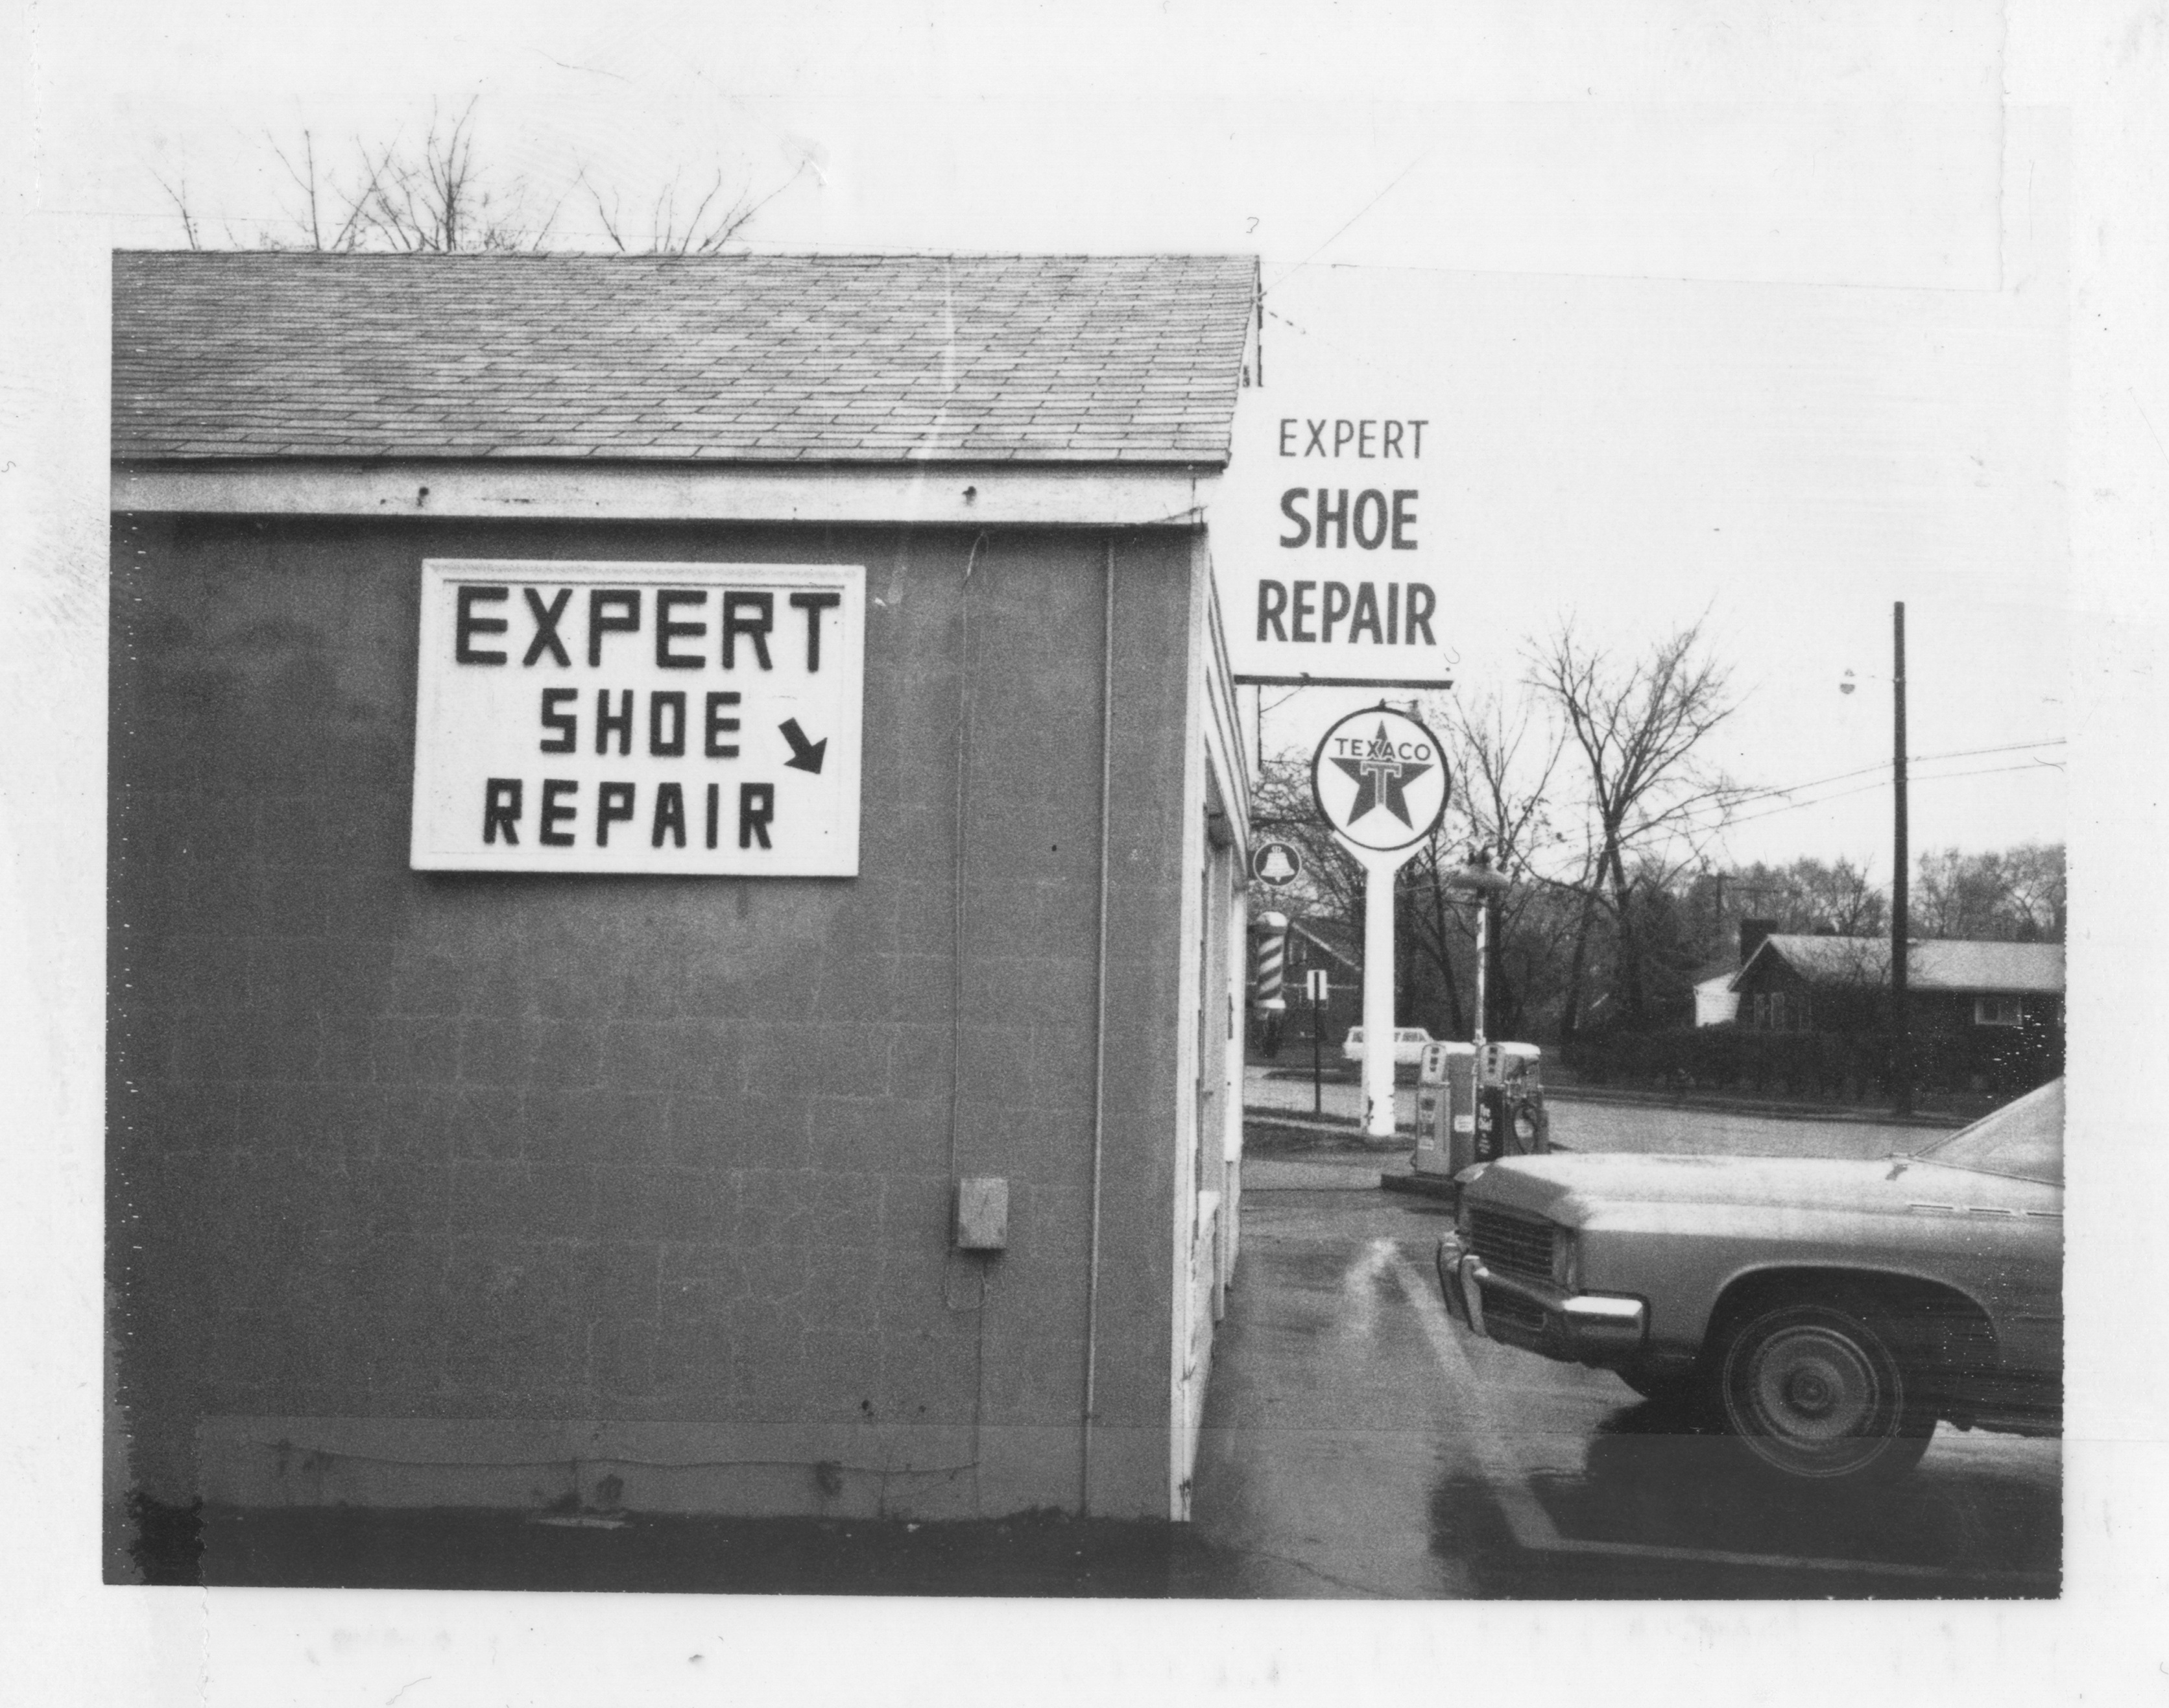 Expert Shoe Repair, 1971 image